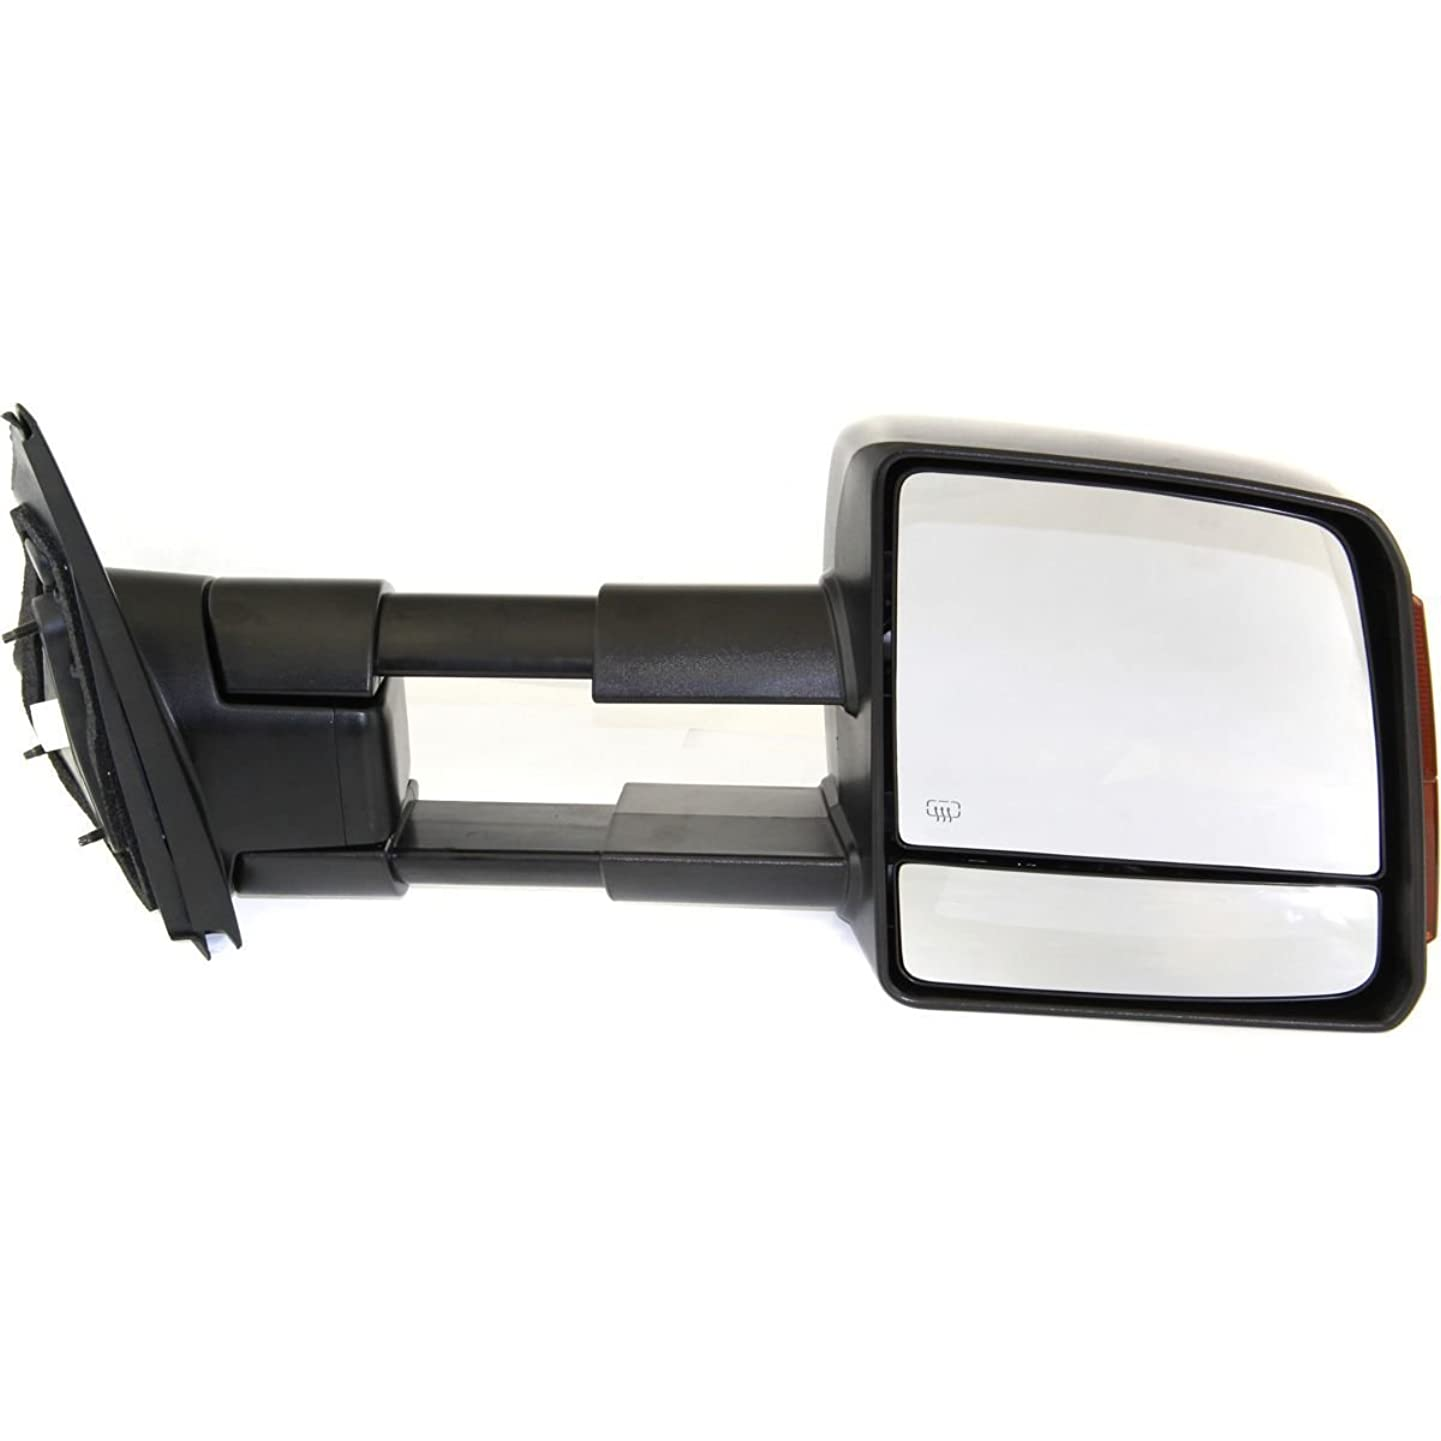 Elite7 Toyota Tundra 07-13 Replacement Power Heated Glass Door Mirror for Passenger Side TO1321243